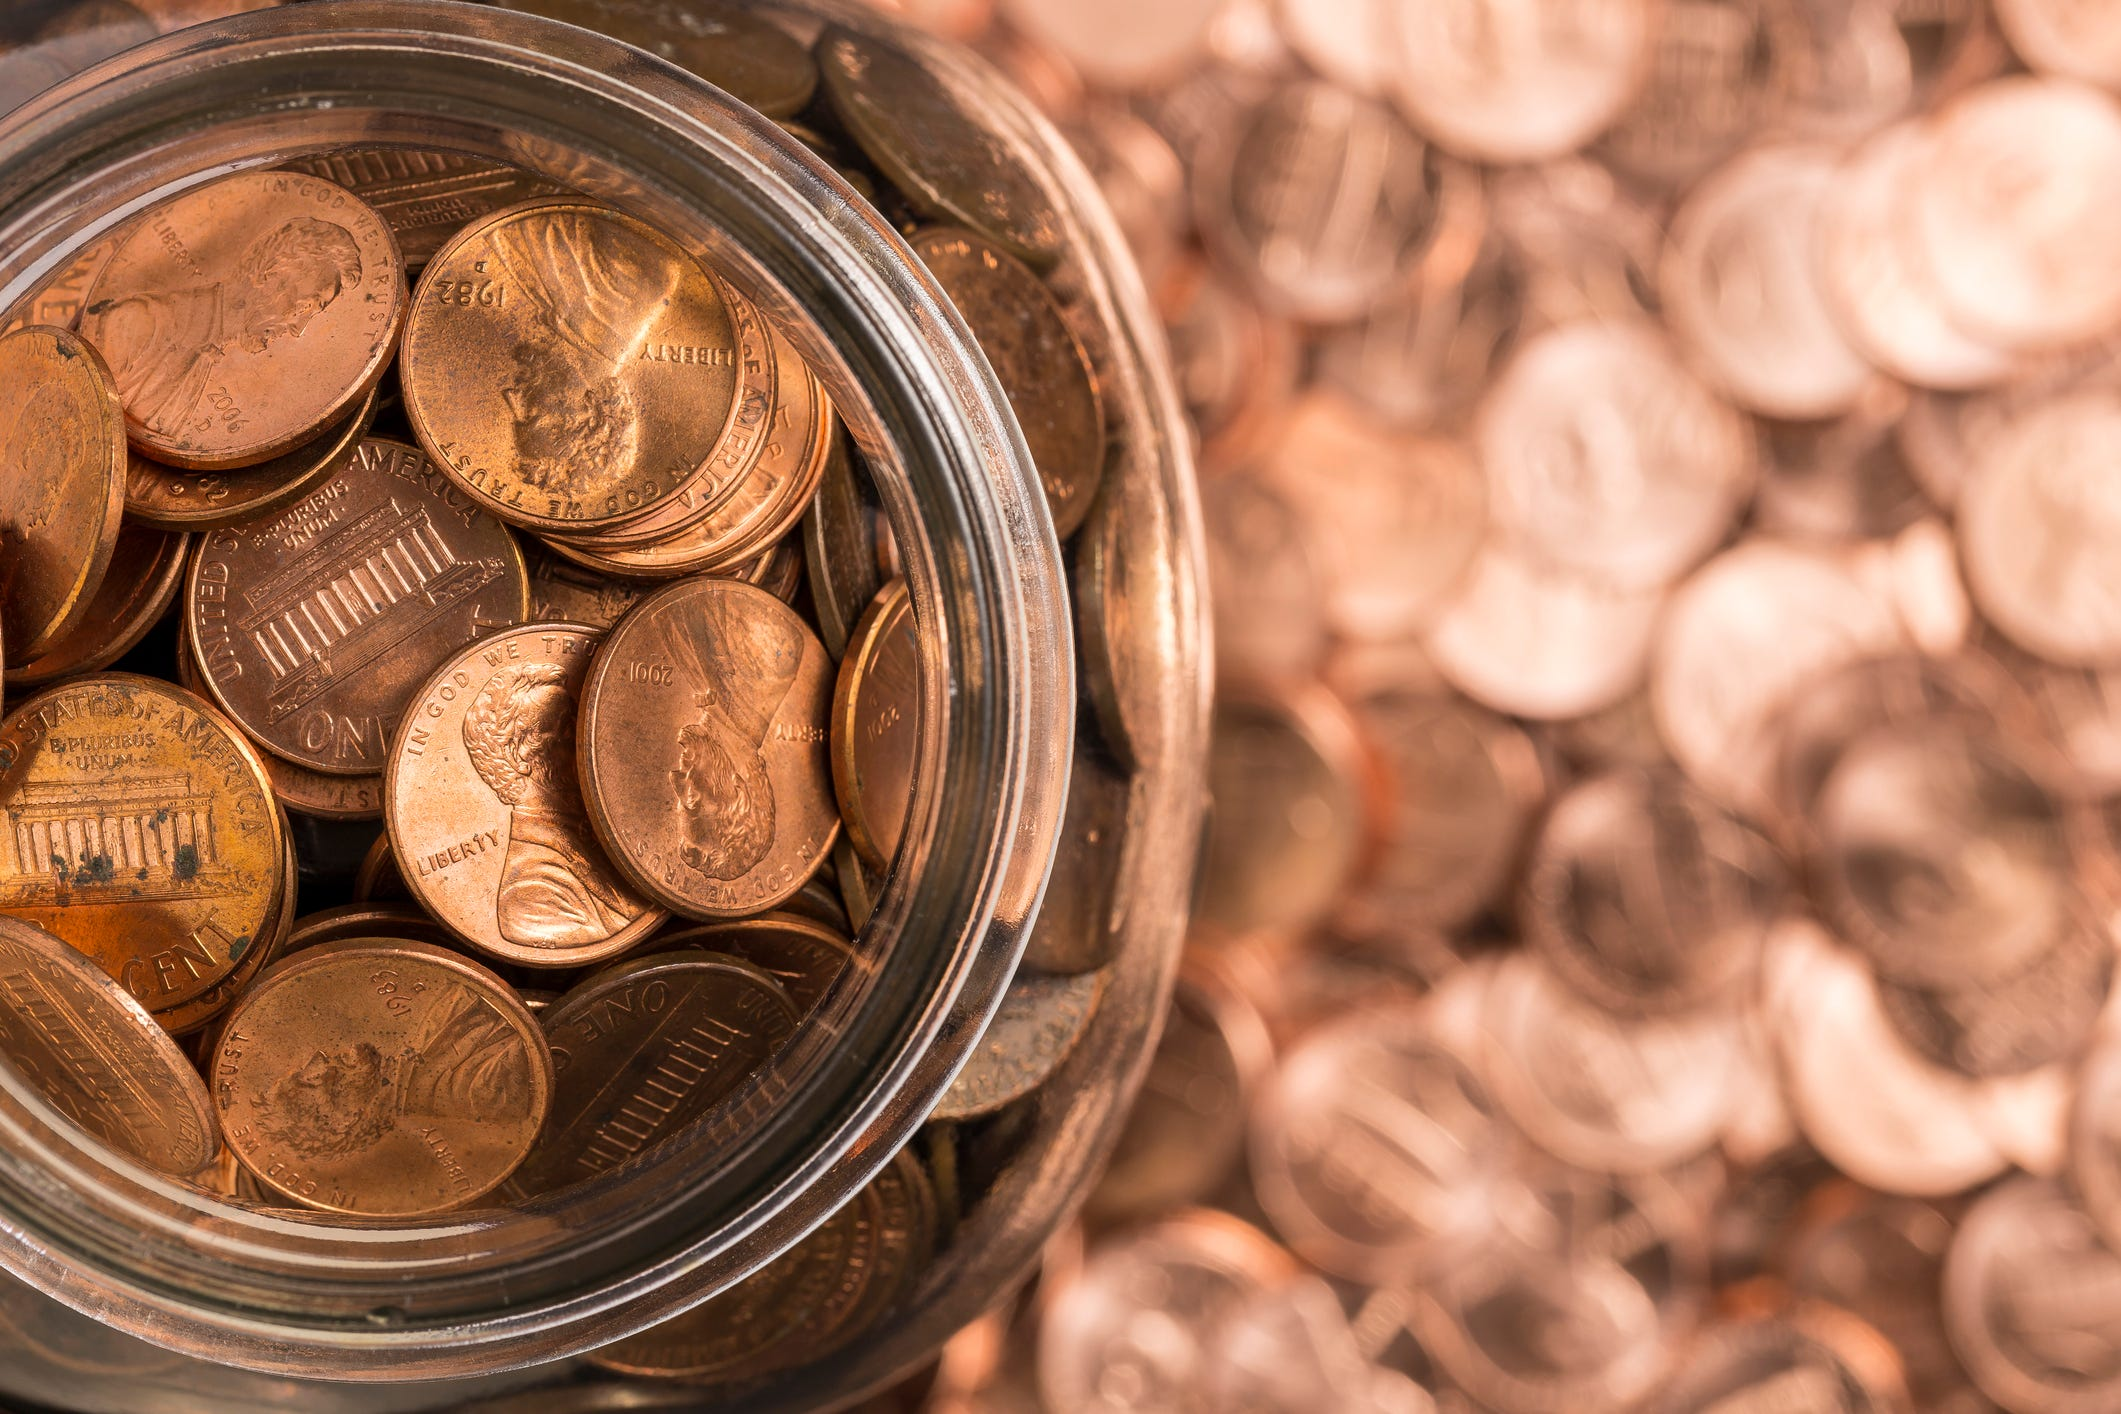 How to turn your pennies into HUNDREDS of pounds